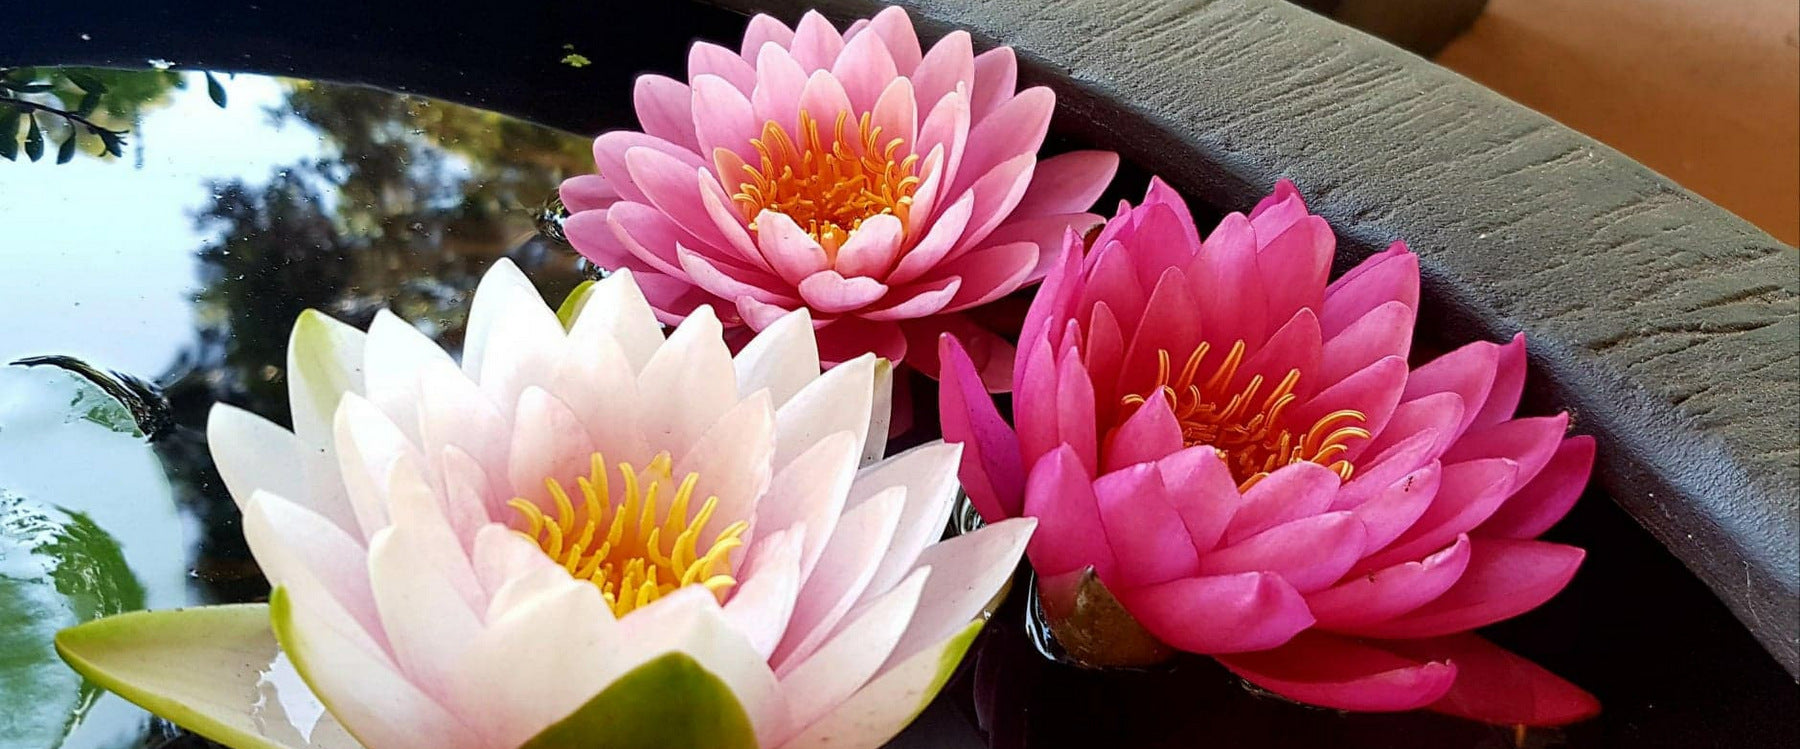 Water Lily (Lilies) In A Bowl